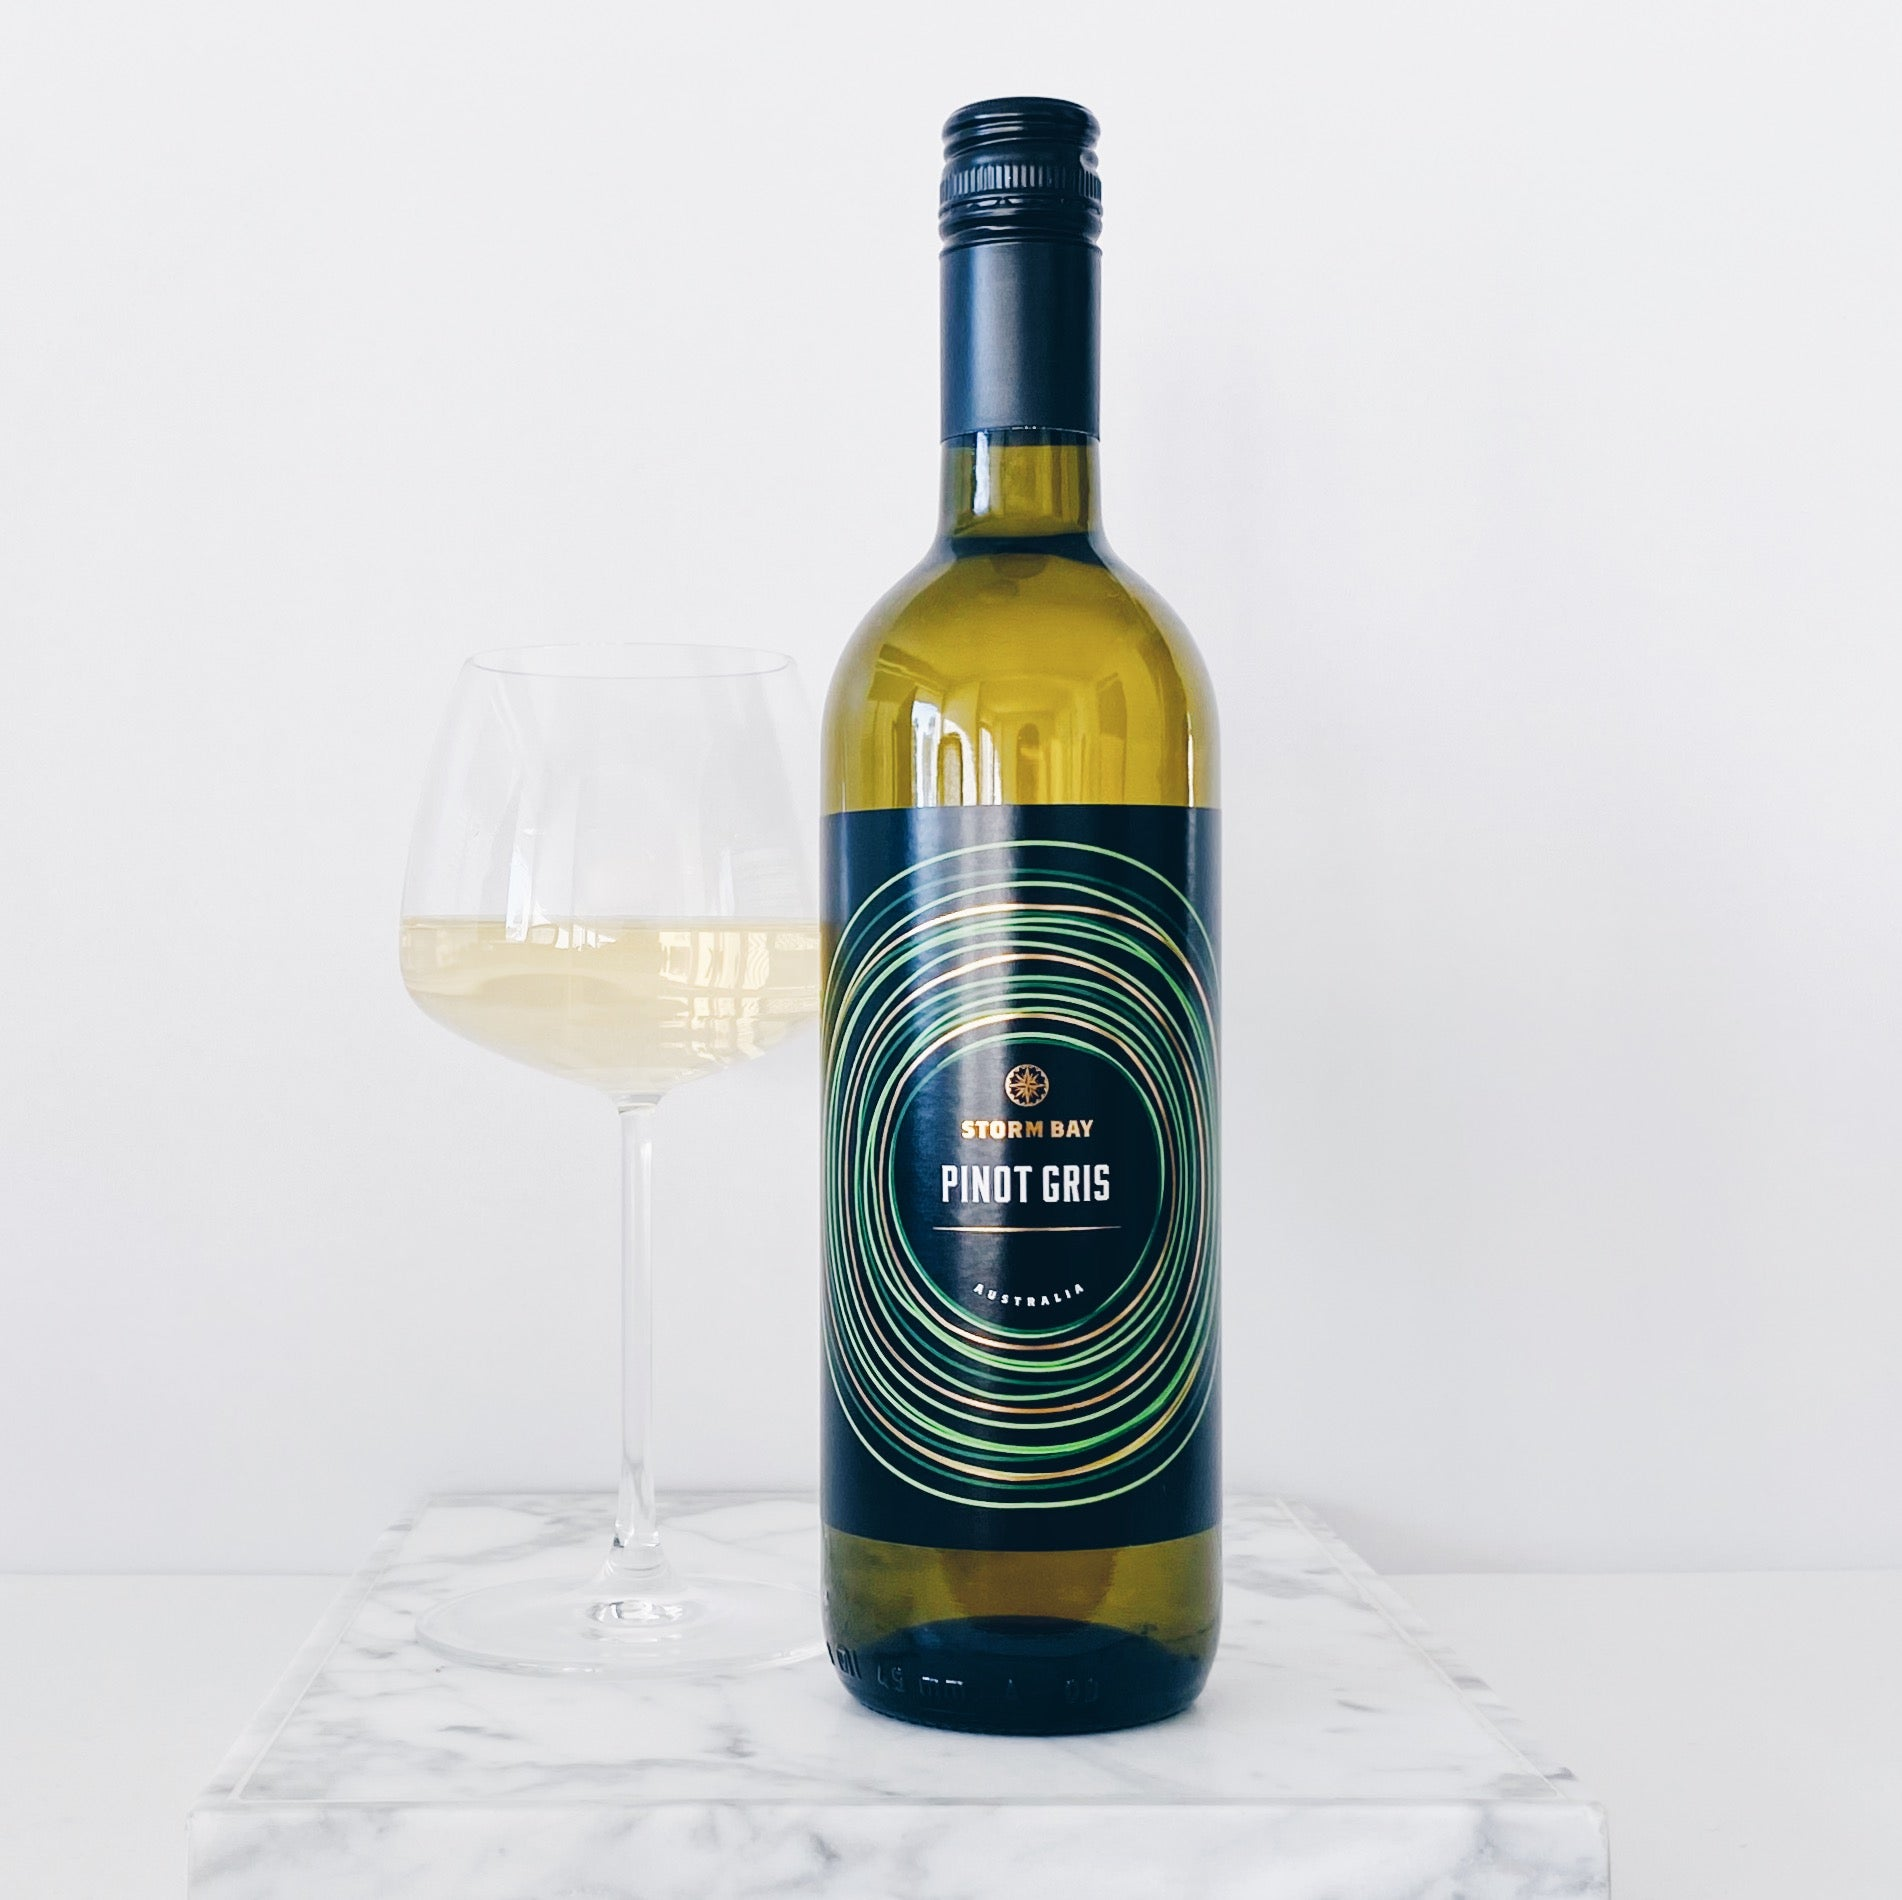 Storm Bay Pinot Gris Wine